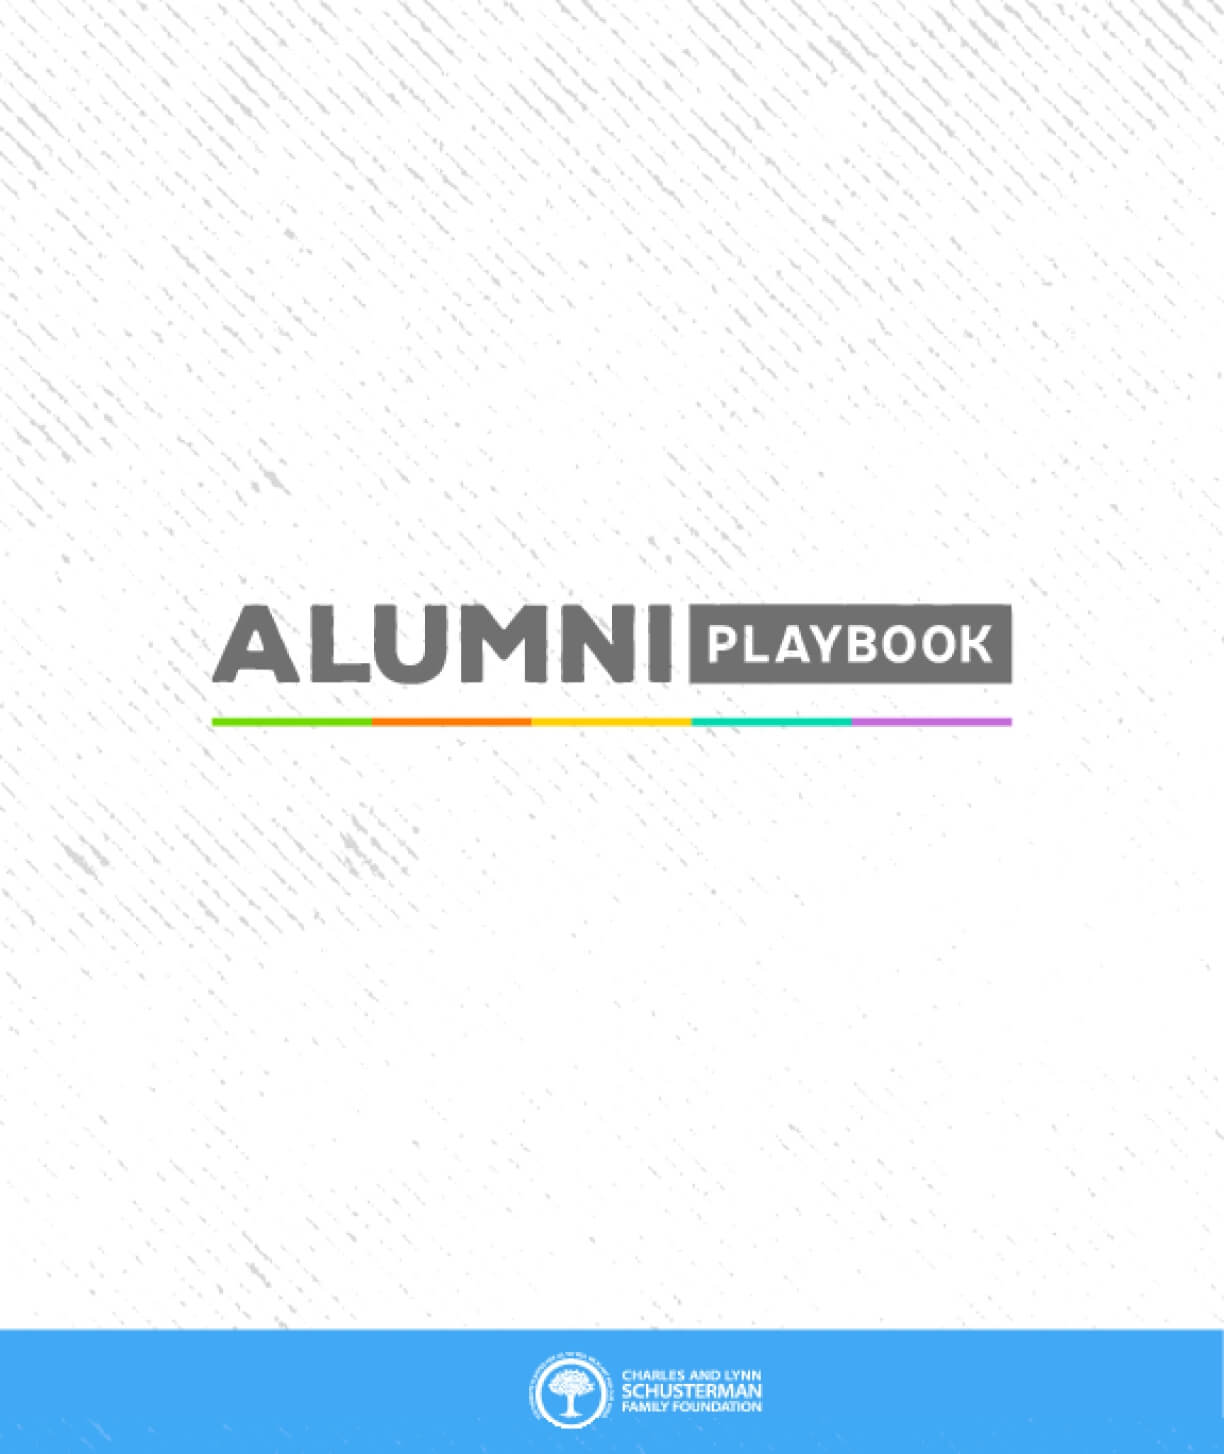 Alumni Playbook